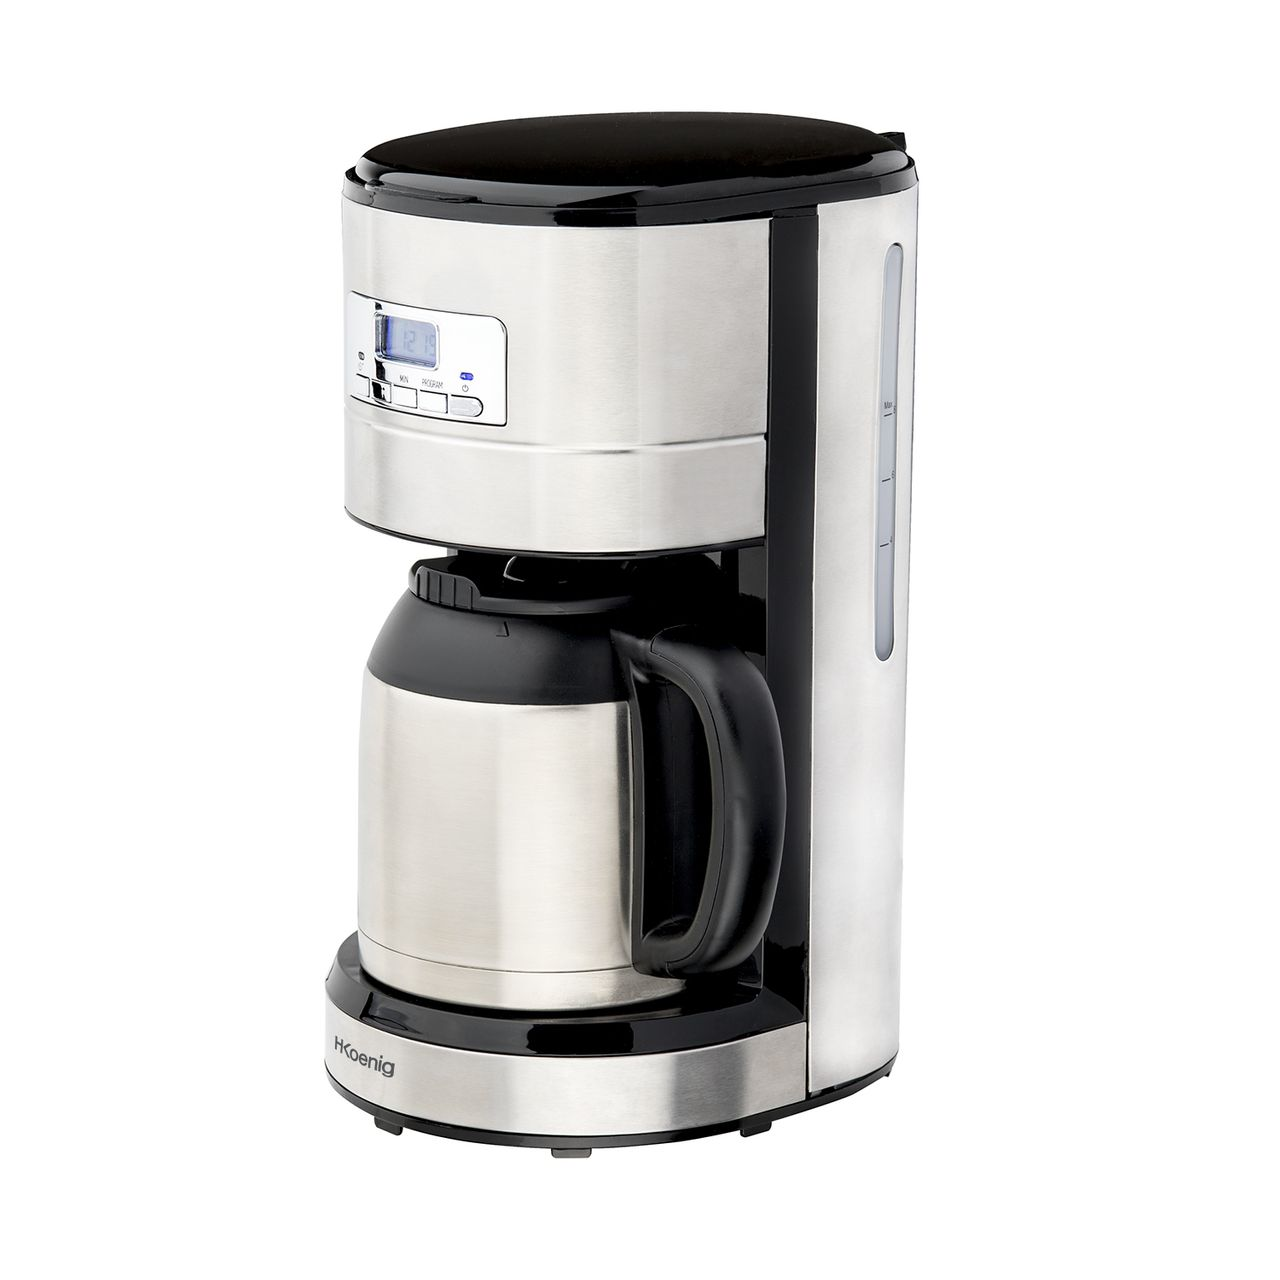 h koenig filter coffee maker programmable 1 2 l keep warm. Black Bedroom Furniture Sets. Home Design Ideas